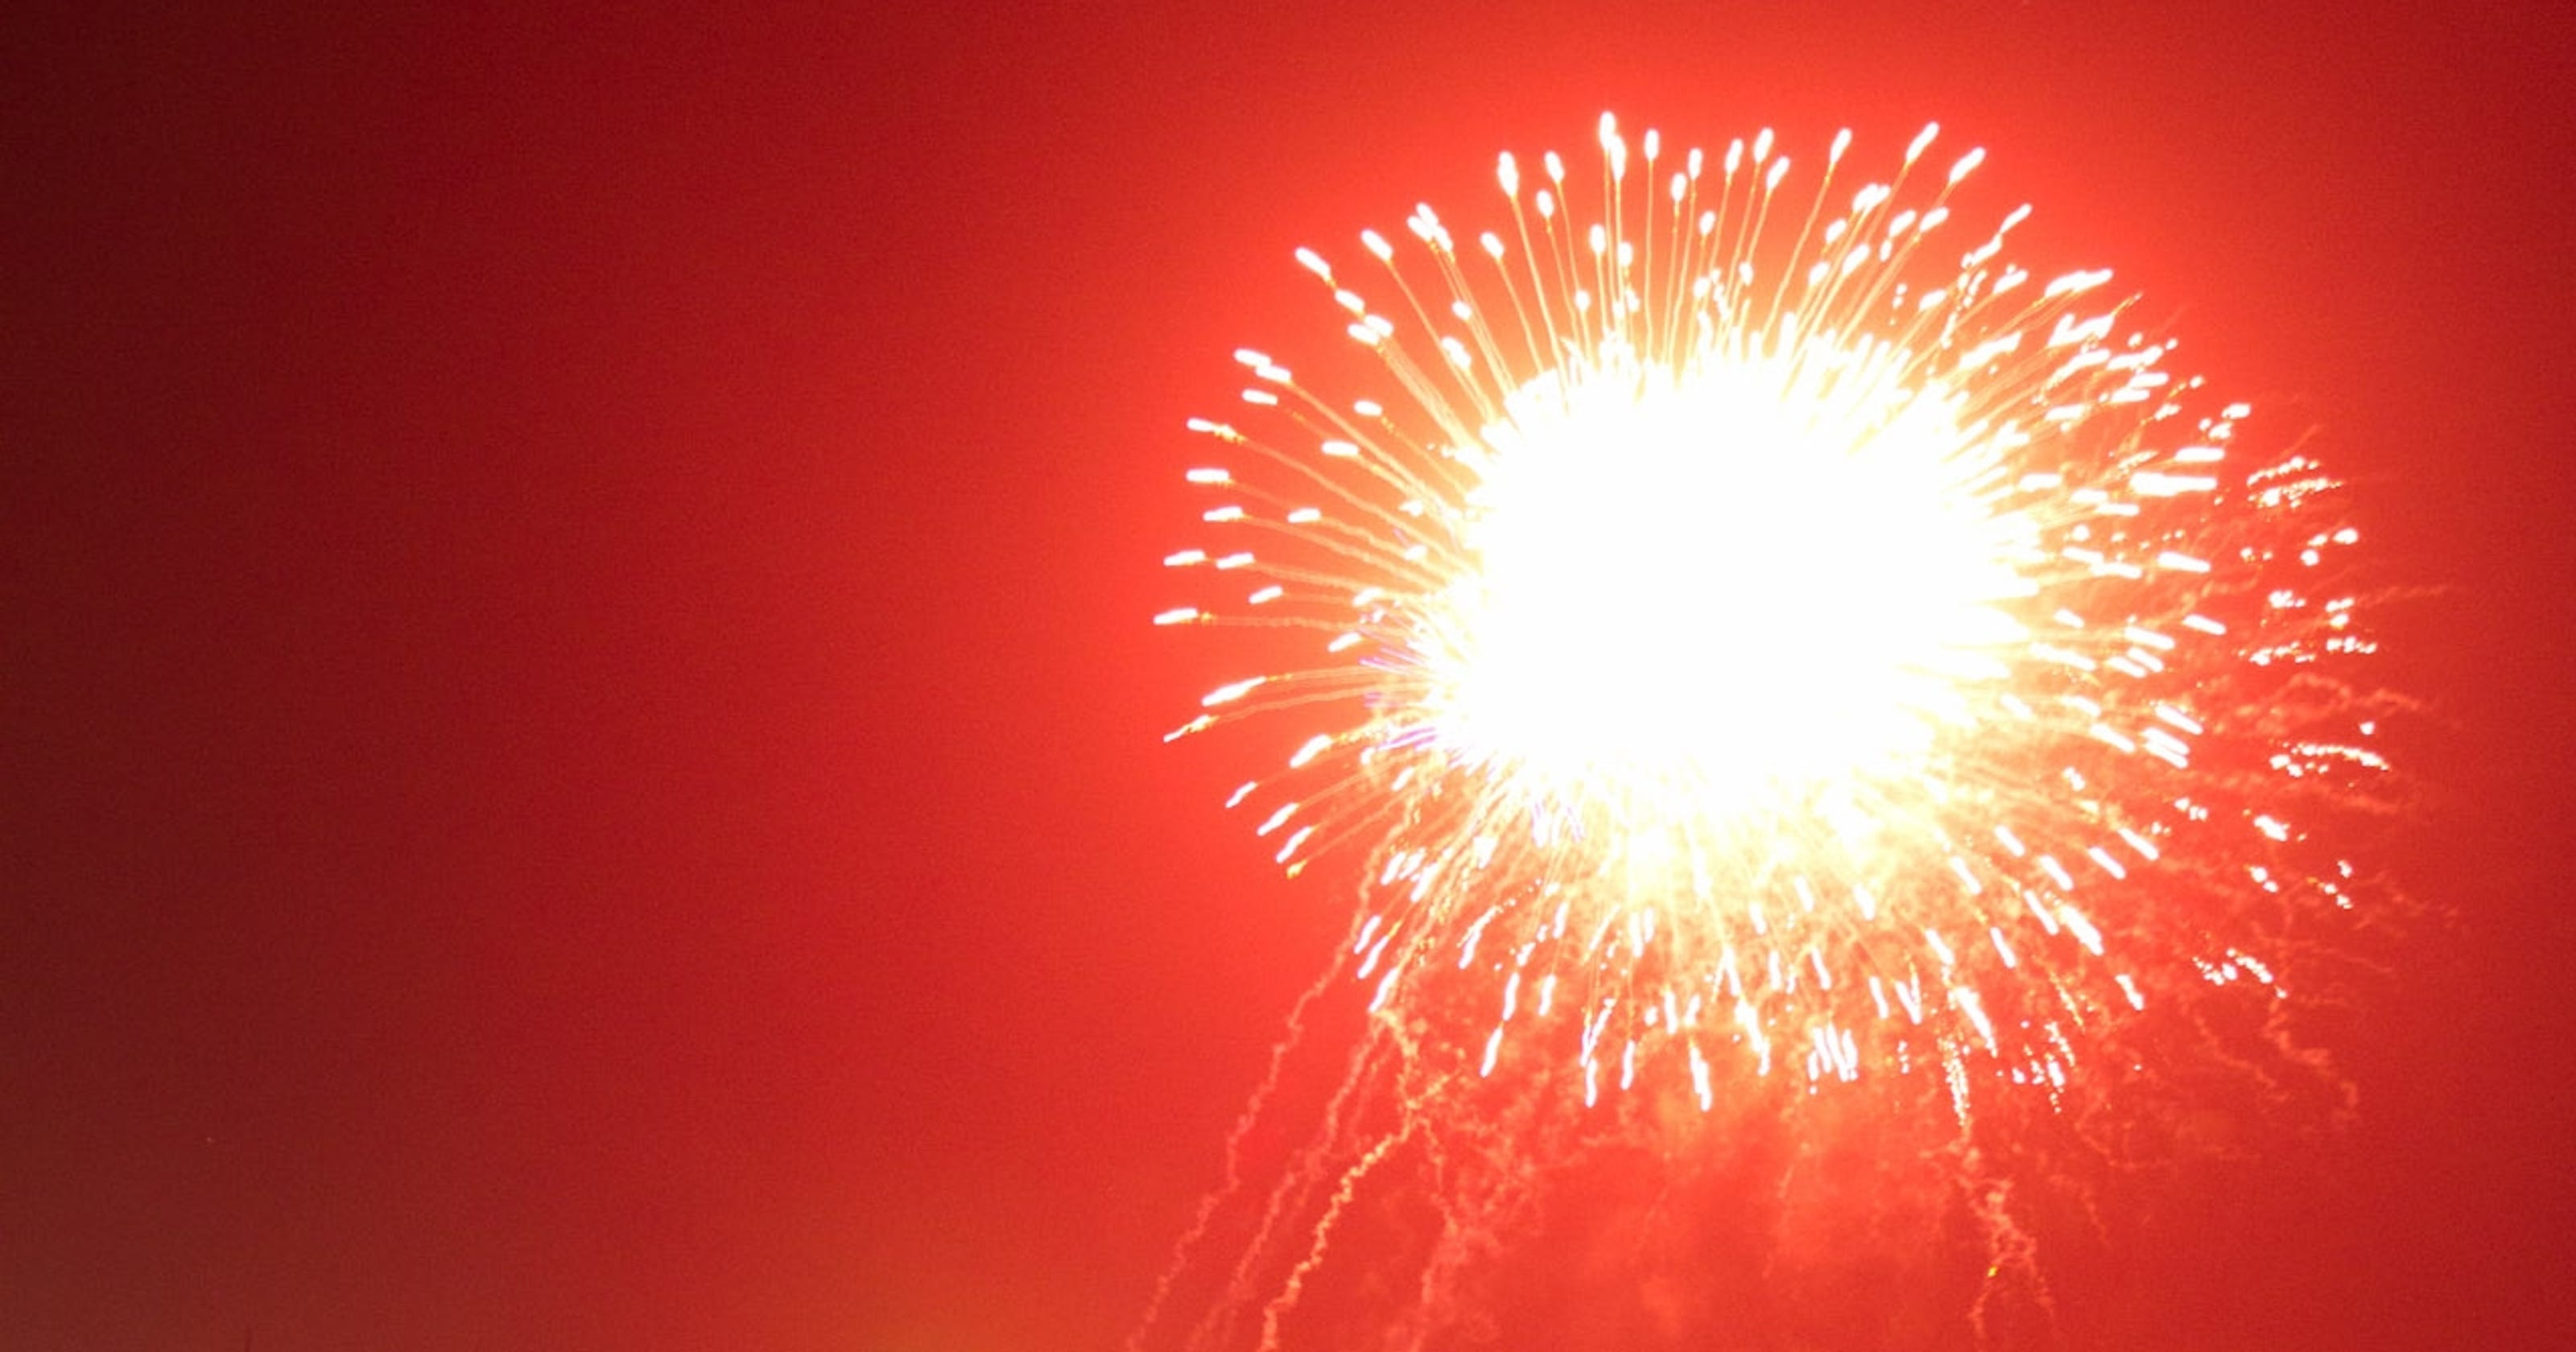 54 places to watch fireworks in New Jersey